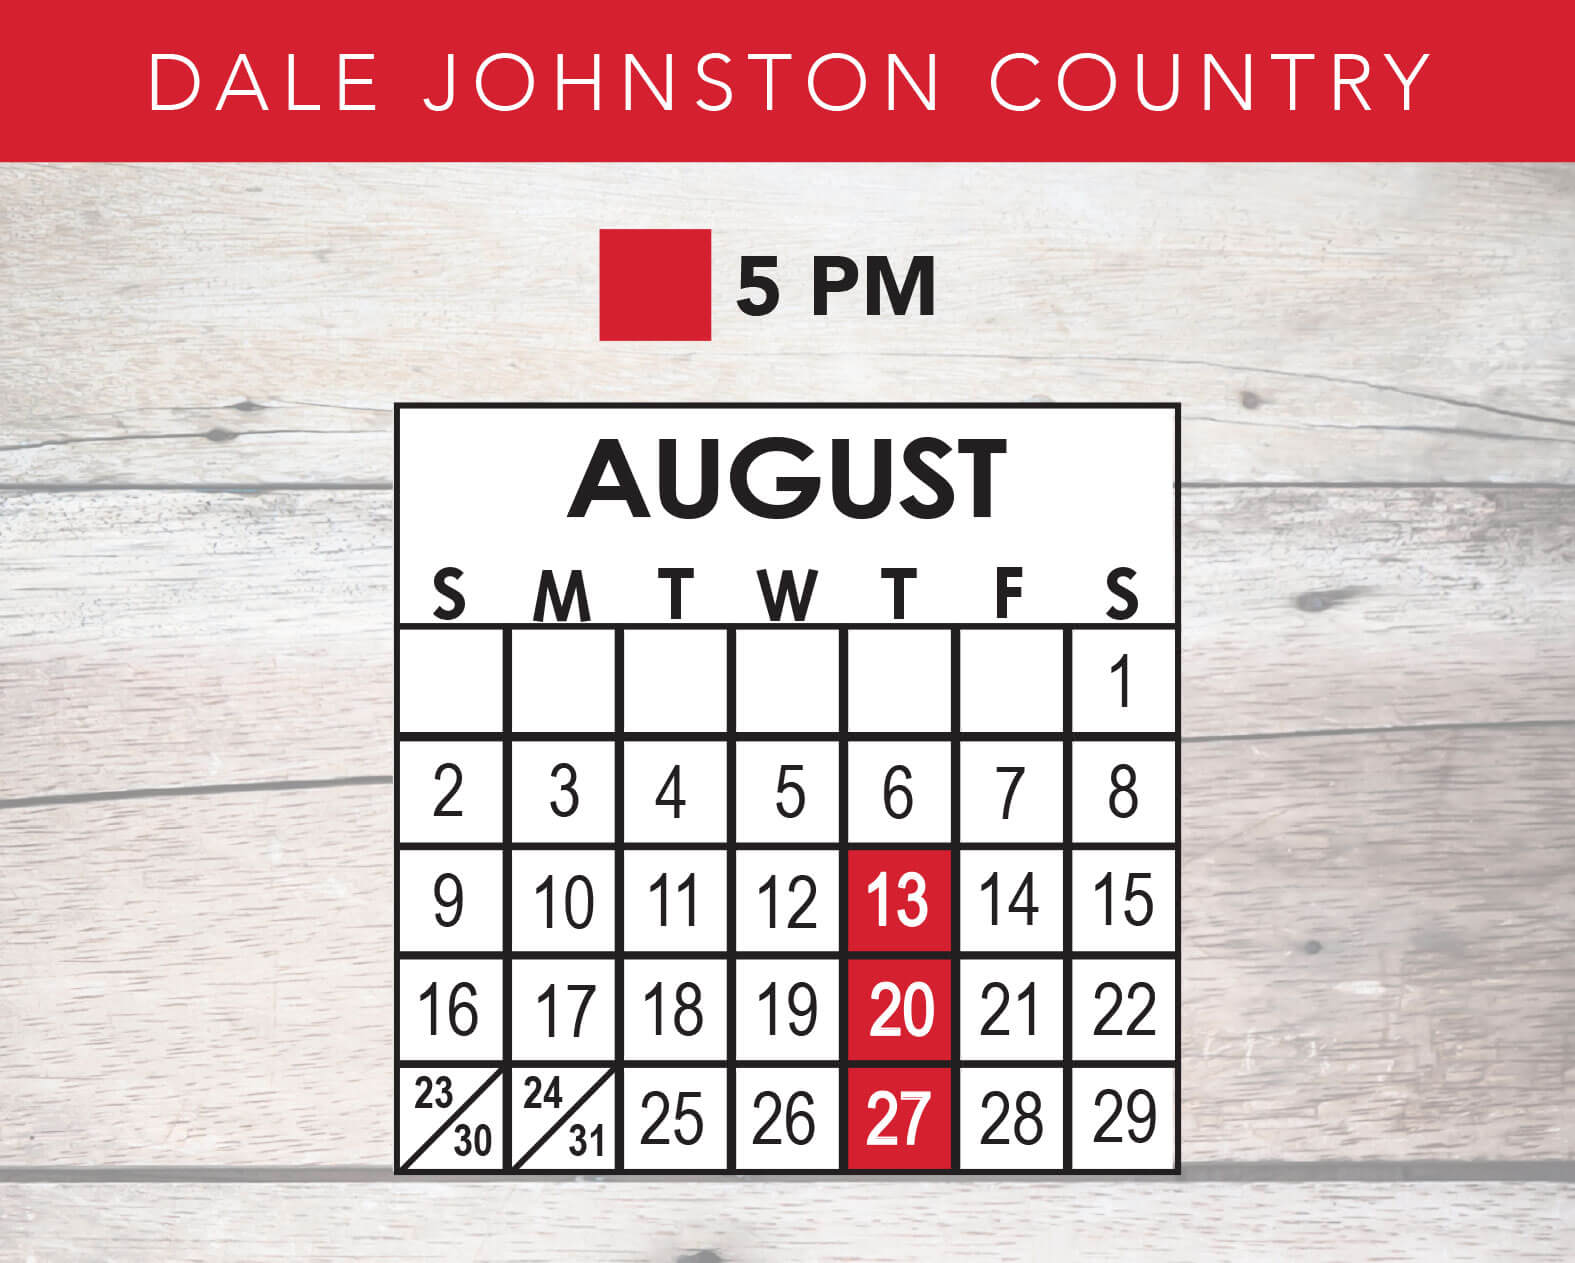 Dale Johnston Country Review 2020 Schedule